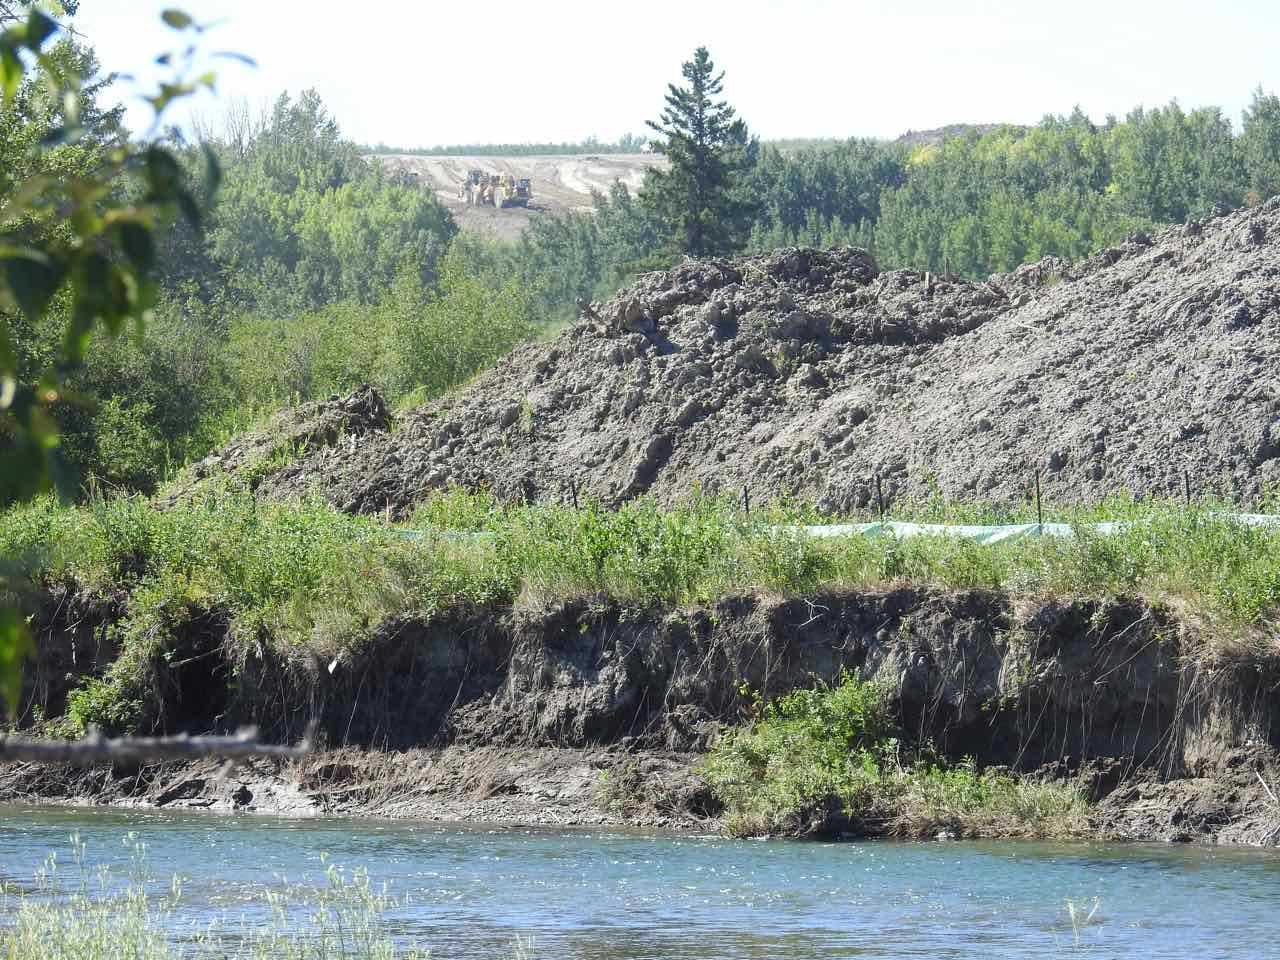 12_SWCRR-TUC-Weaselhead___Cutting_Earth_Far_South_of_the_Elbow_River_Valley-July_24_2017.jpg